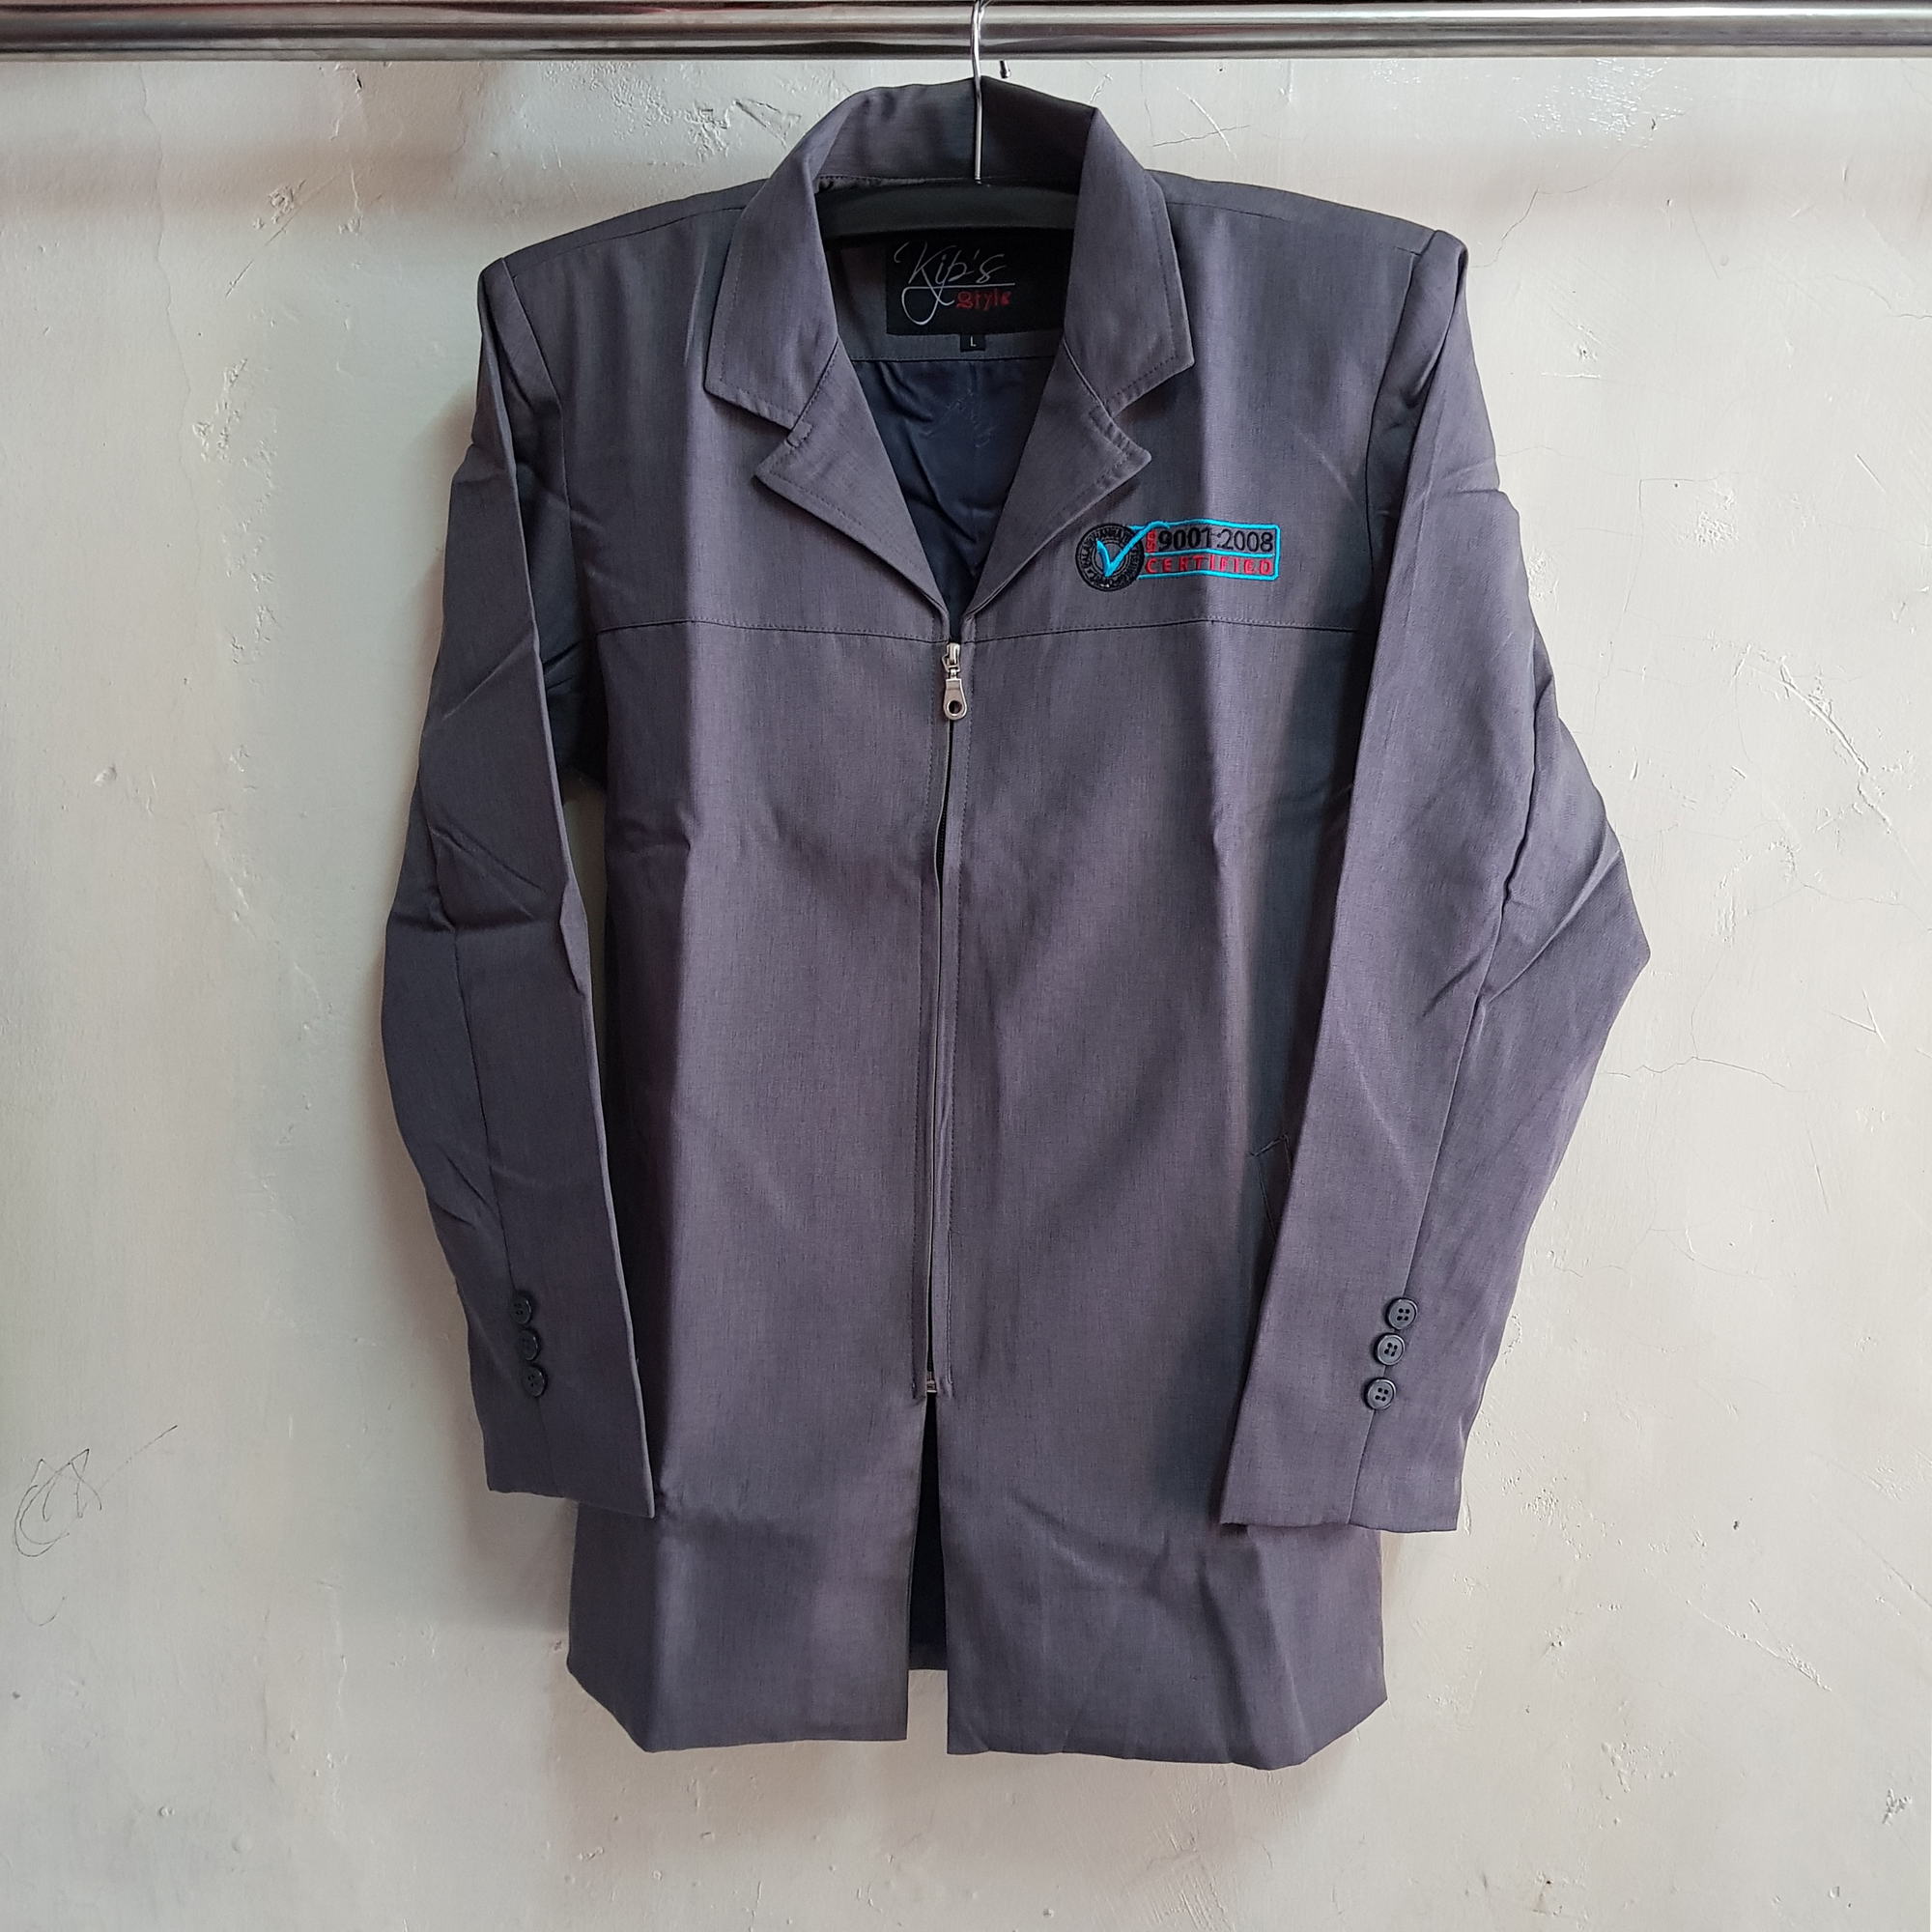 Jaket Wool Semi Formal PPNP, Seragam Jaket